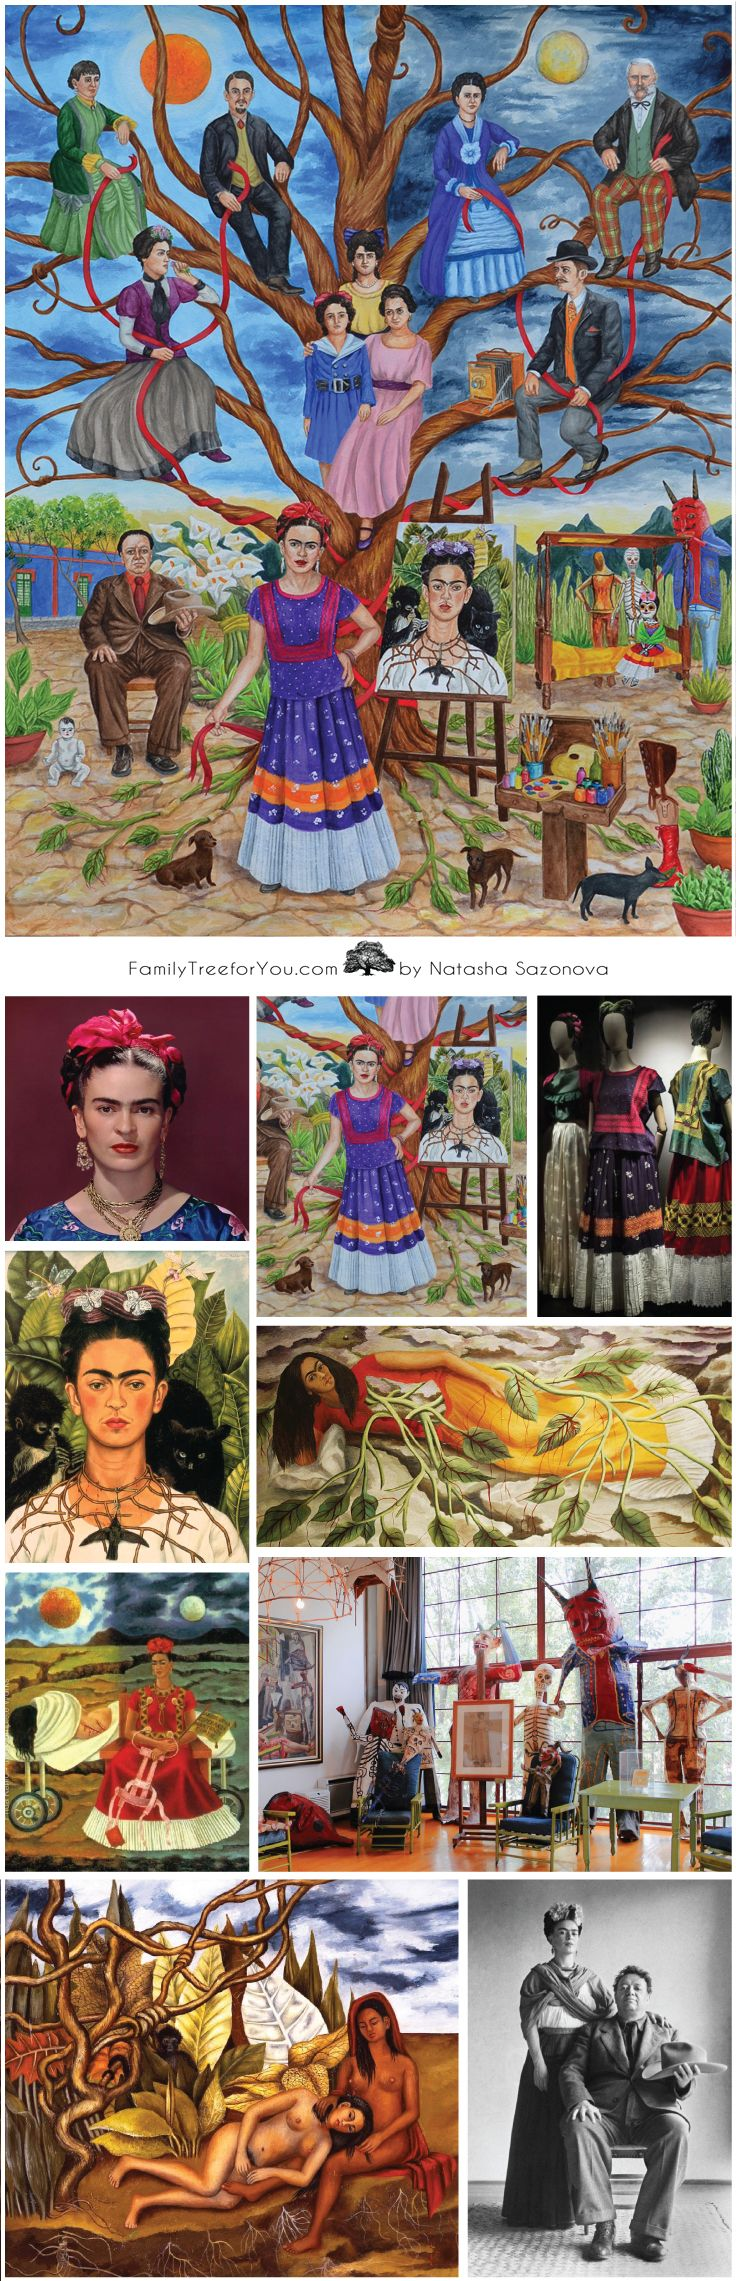 Frida Kahlo's family tree, along with Kahlo's photos, self-portraits and paintings that inspired this tribute to Frida by another woman artist and big Frida Kahlo fan Natasha Sazonova.